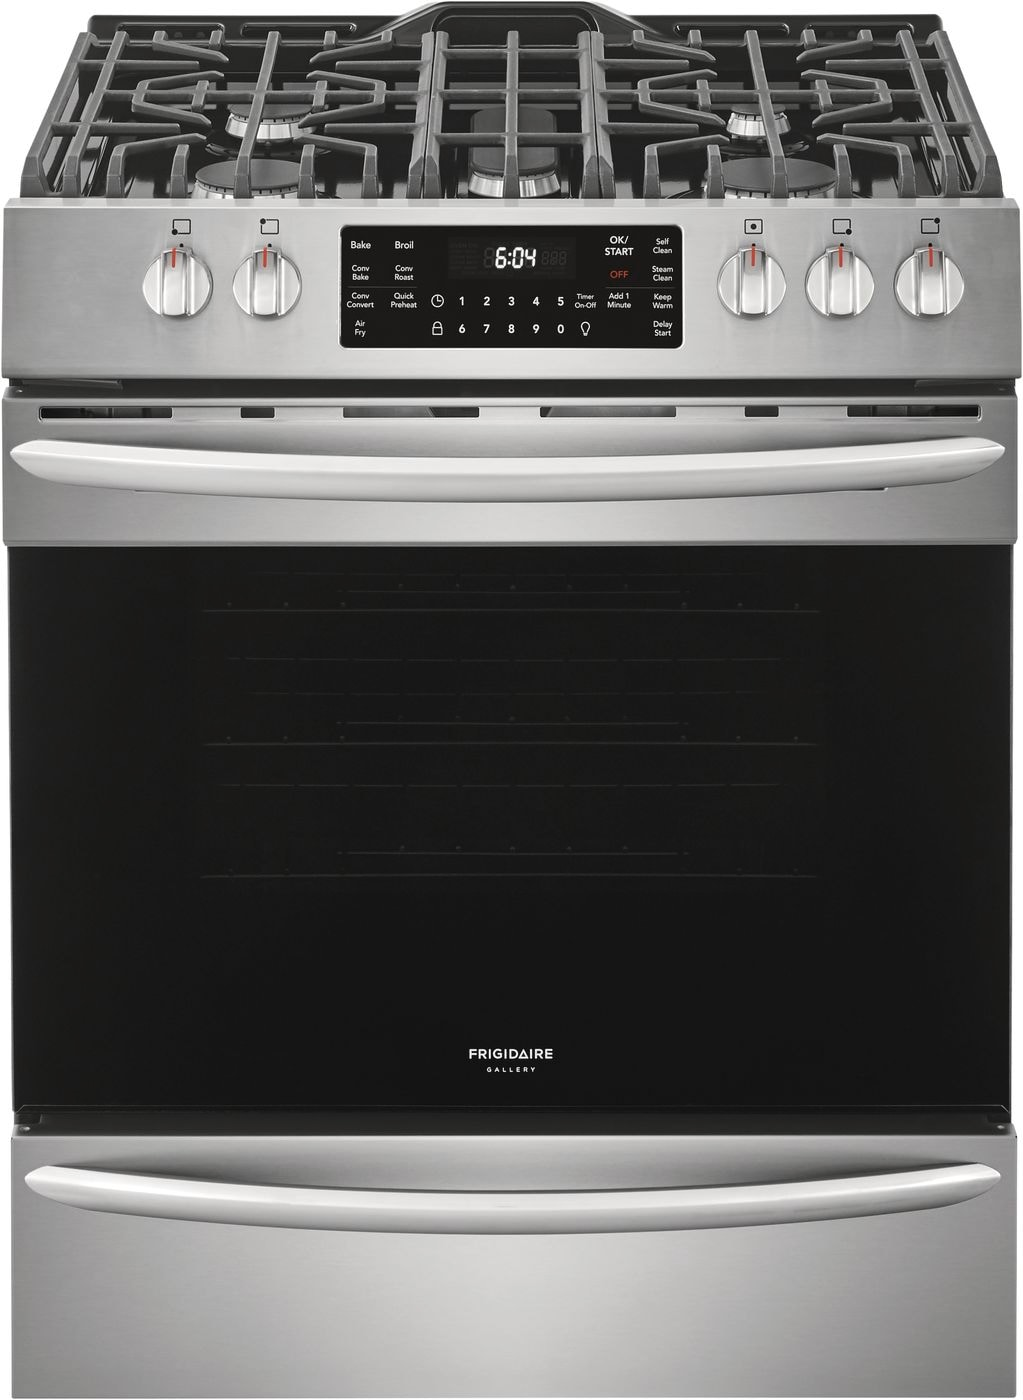 """Frigidaire Gallery 30"""" Front Control Gas Range with Air Fry - Used, Like New"""